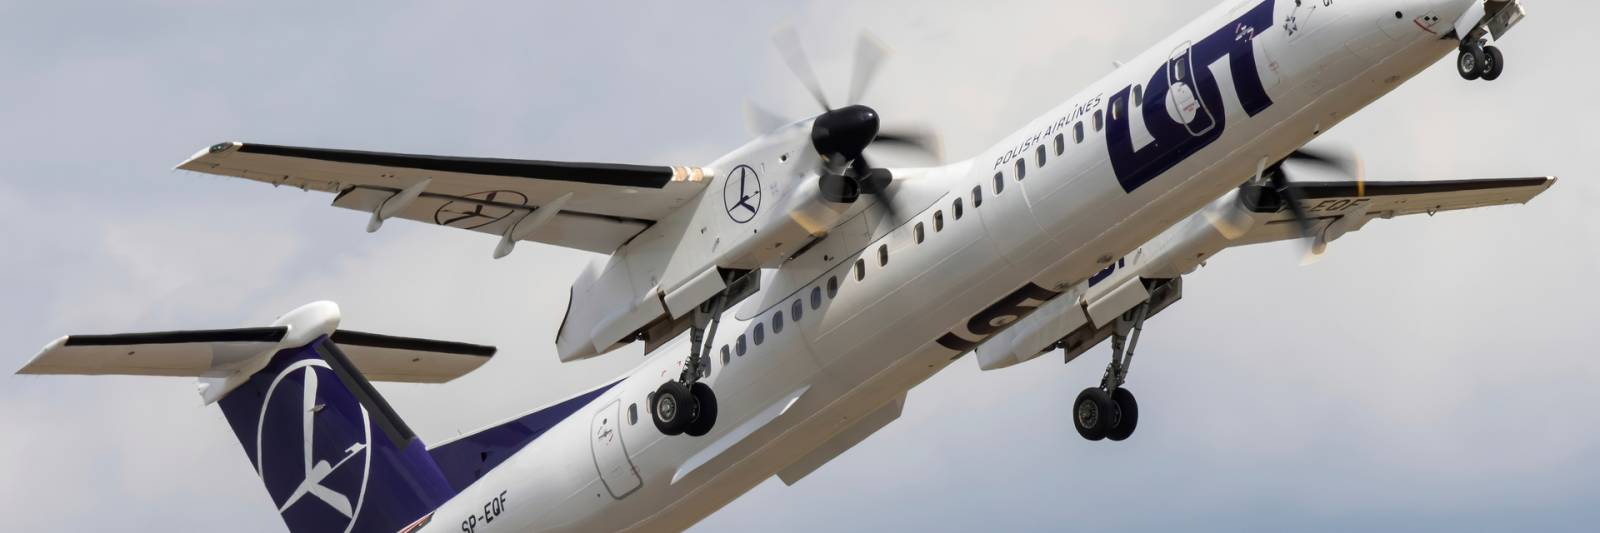 Hackers Publish Bombardier Data In Wide Reaching Fta Cyber Attack